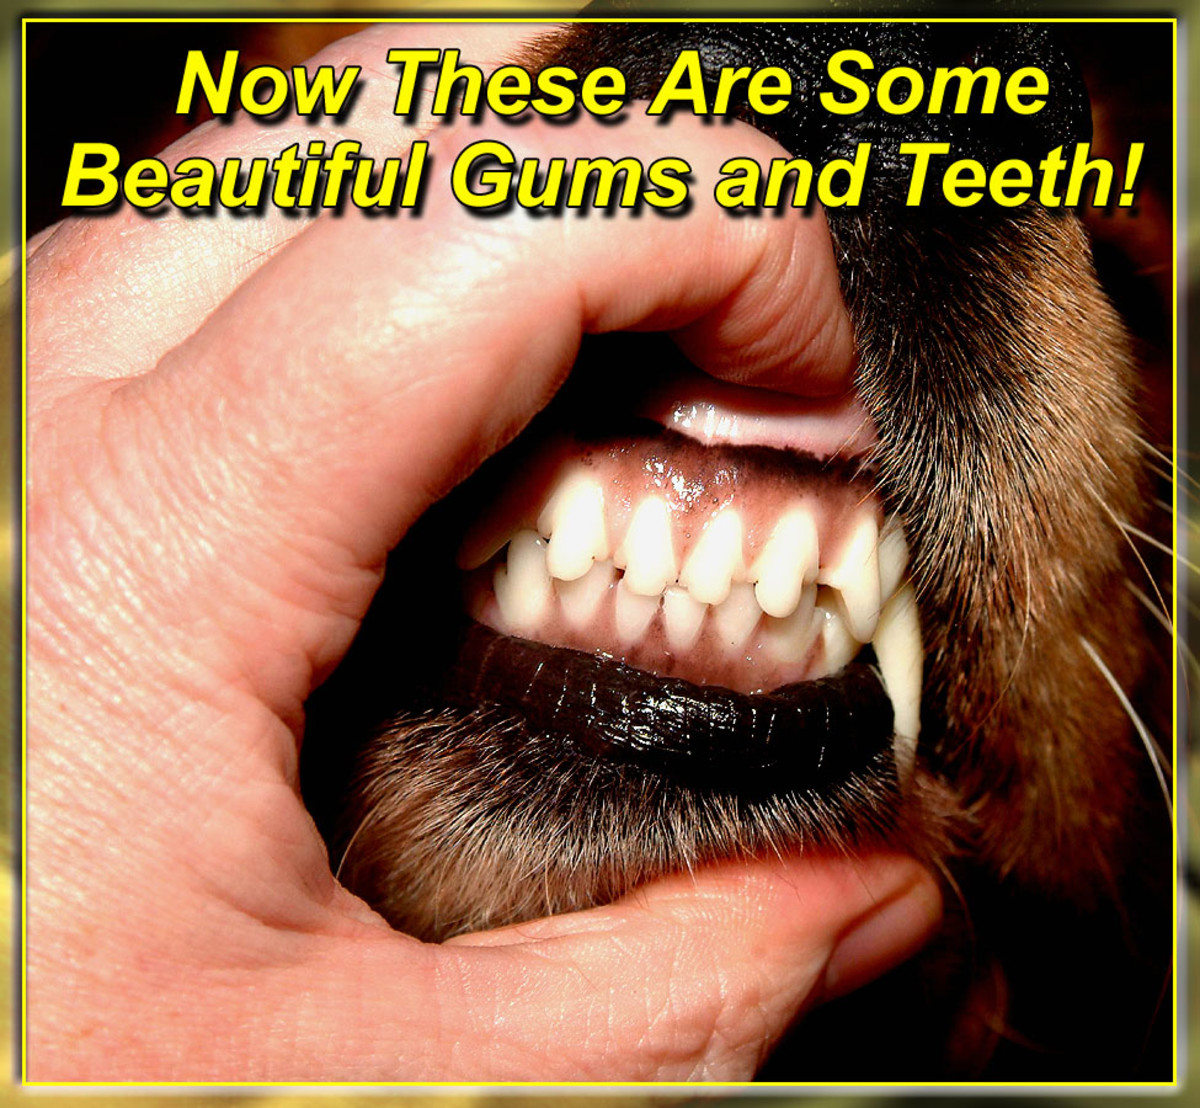 Clean plaque-free teeth and healthy tight pink gums are a sure sign that your dog has good health and fresh breath!